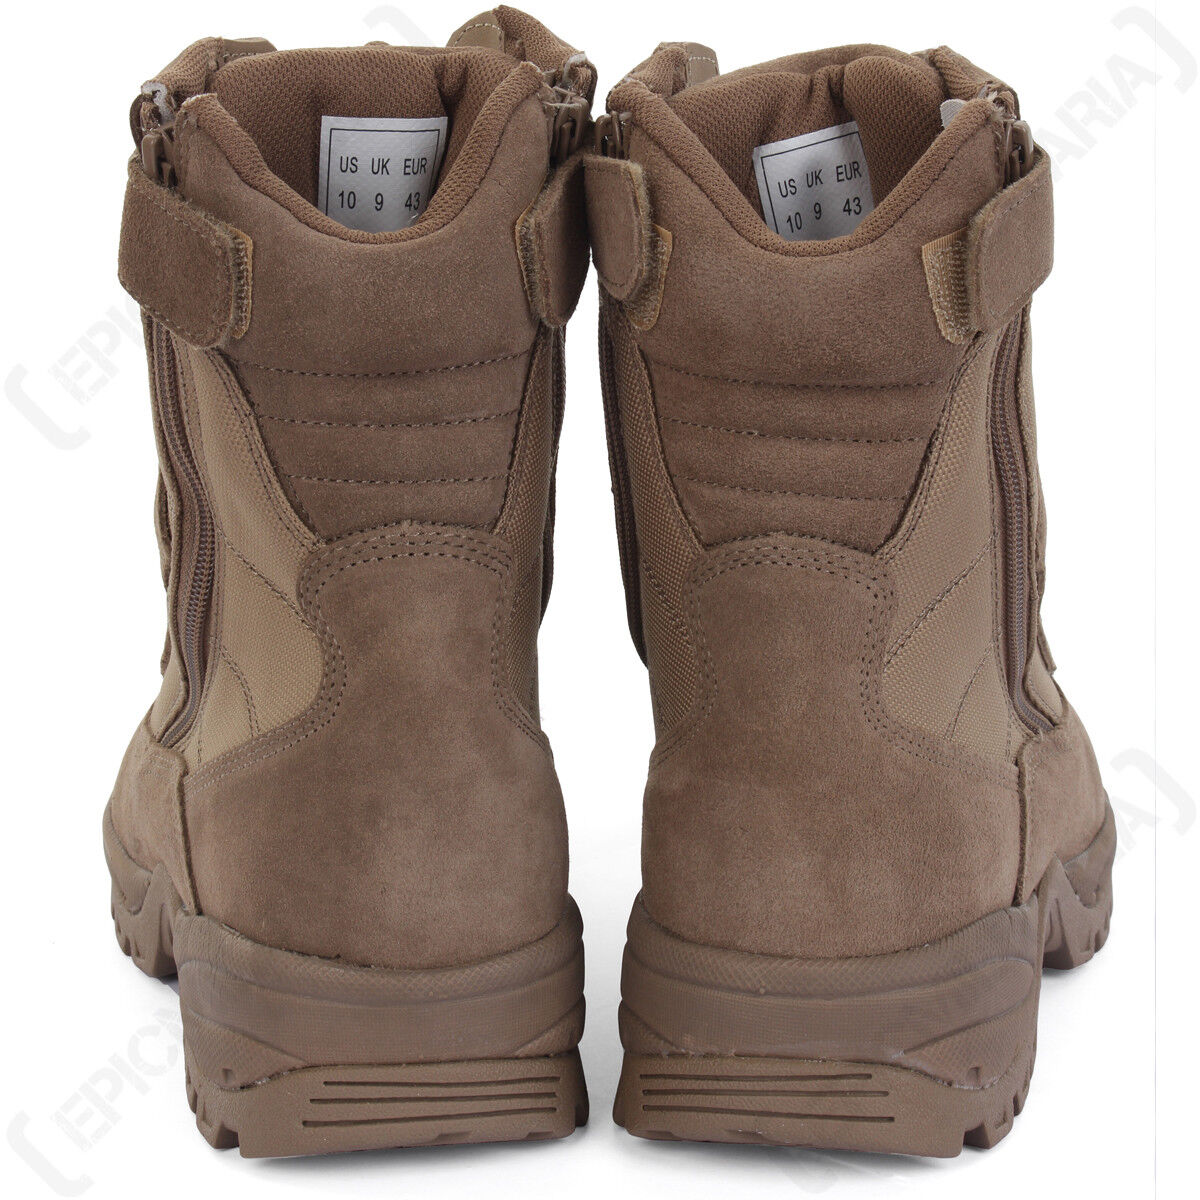 Coyote Tactical Army Army Army Stiefel - 2 Zips - Tan Military Outdoors Schuhes All Größes New 586e05